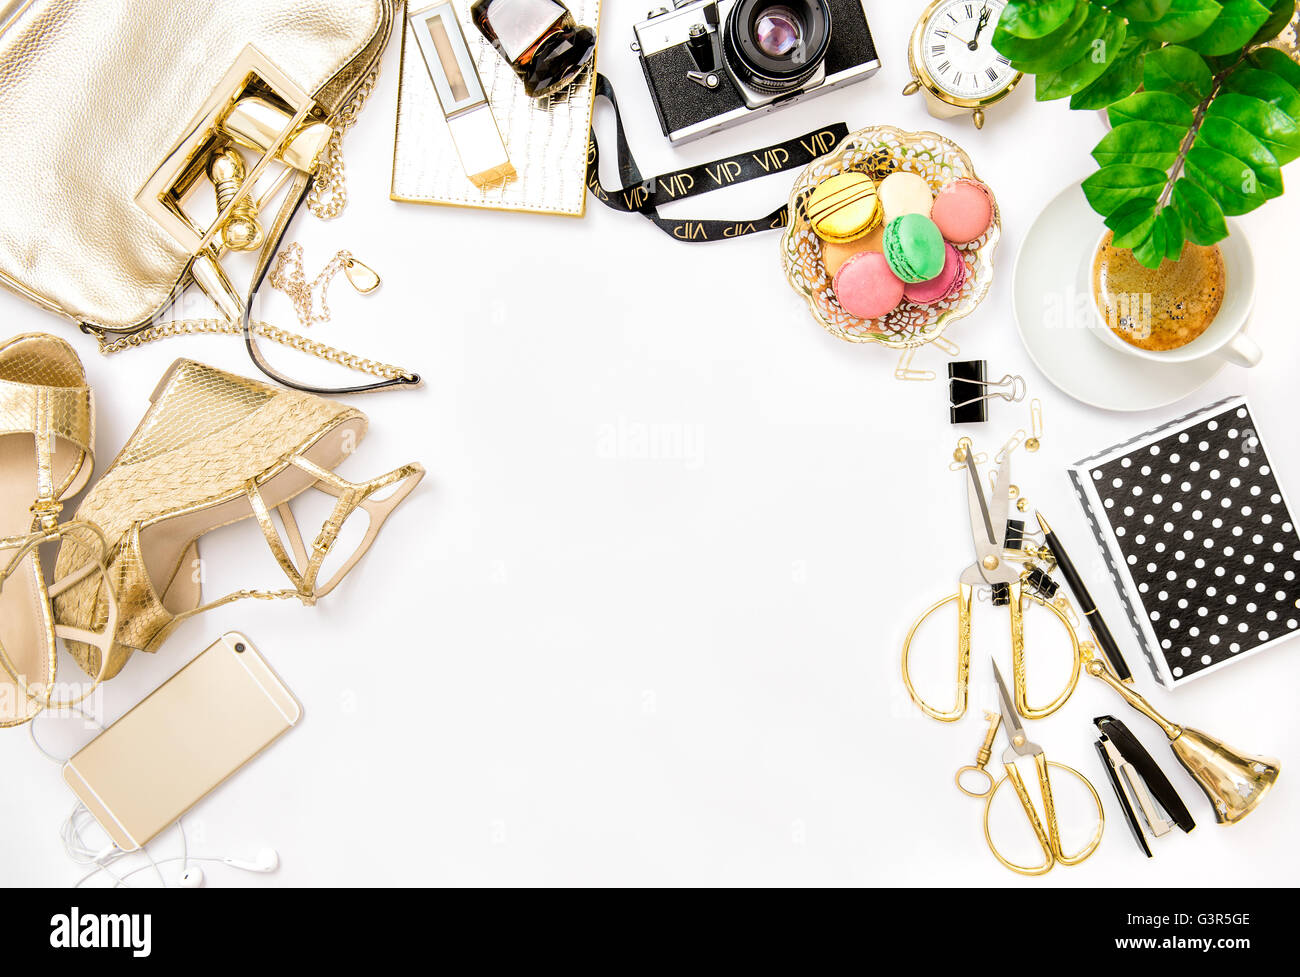 Fashion Flat Lay For Bloggers Social Media. Feminine Accessories, Bag,  Shoes, Office Supplies, Vintage No Name Photo Camera And